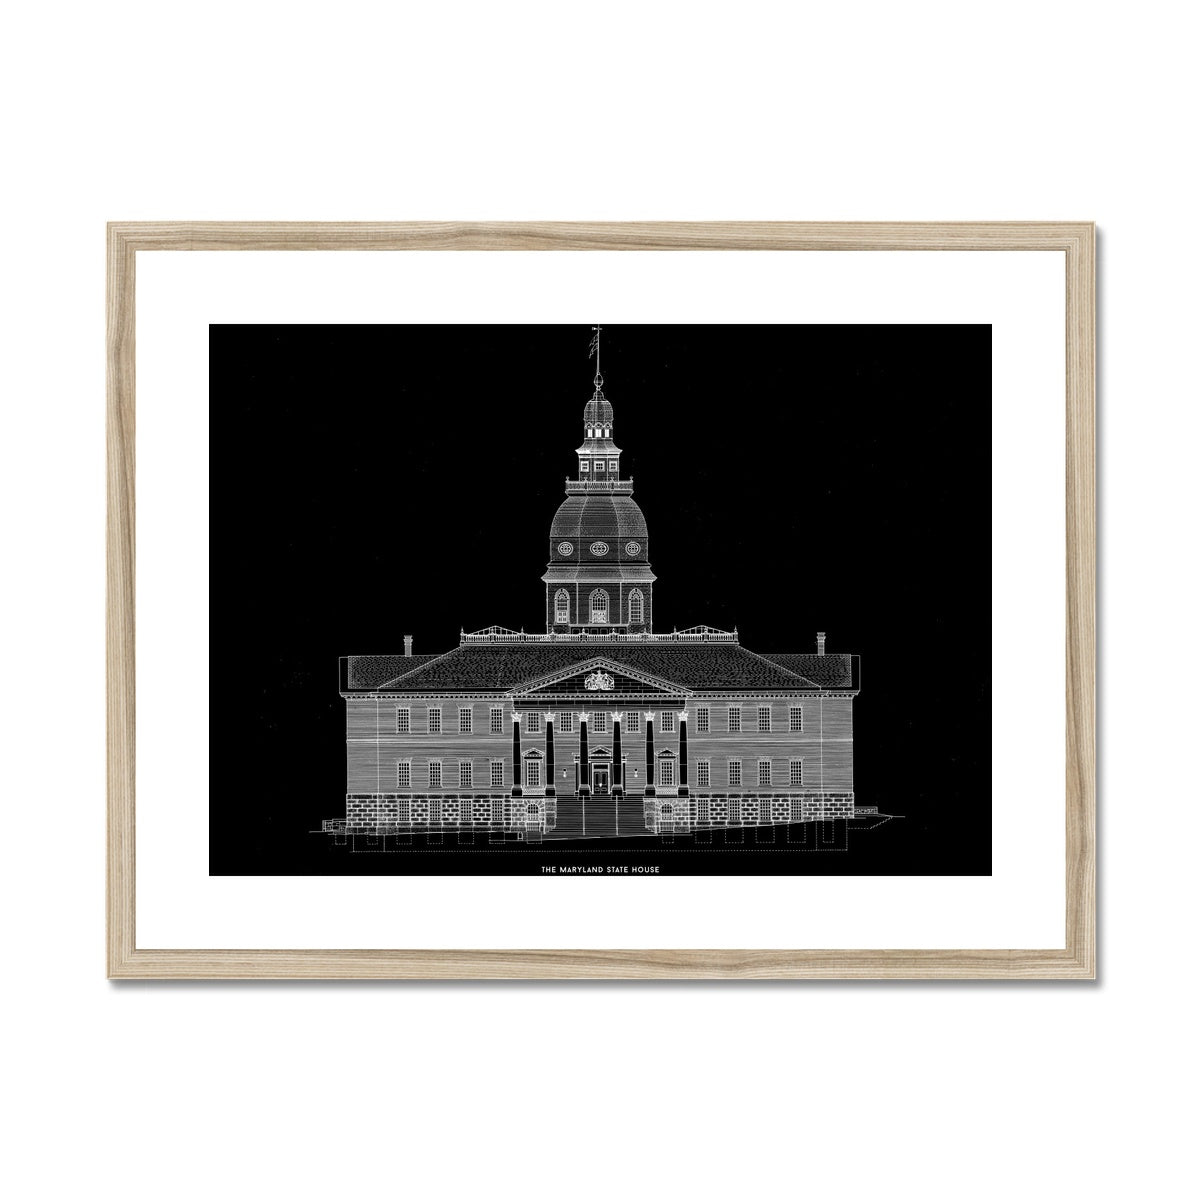 The Maryland State House - Northwest Elevation - Black -  Framed & Mounted Print